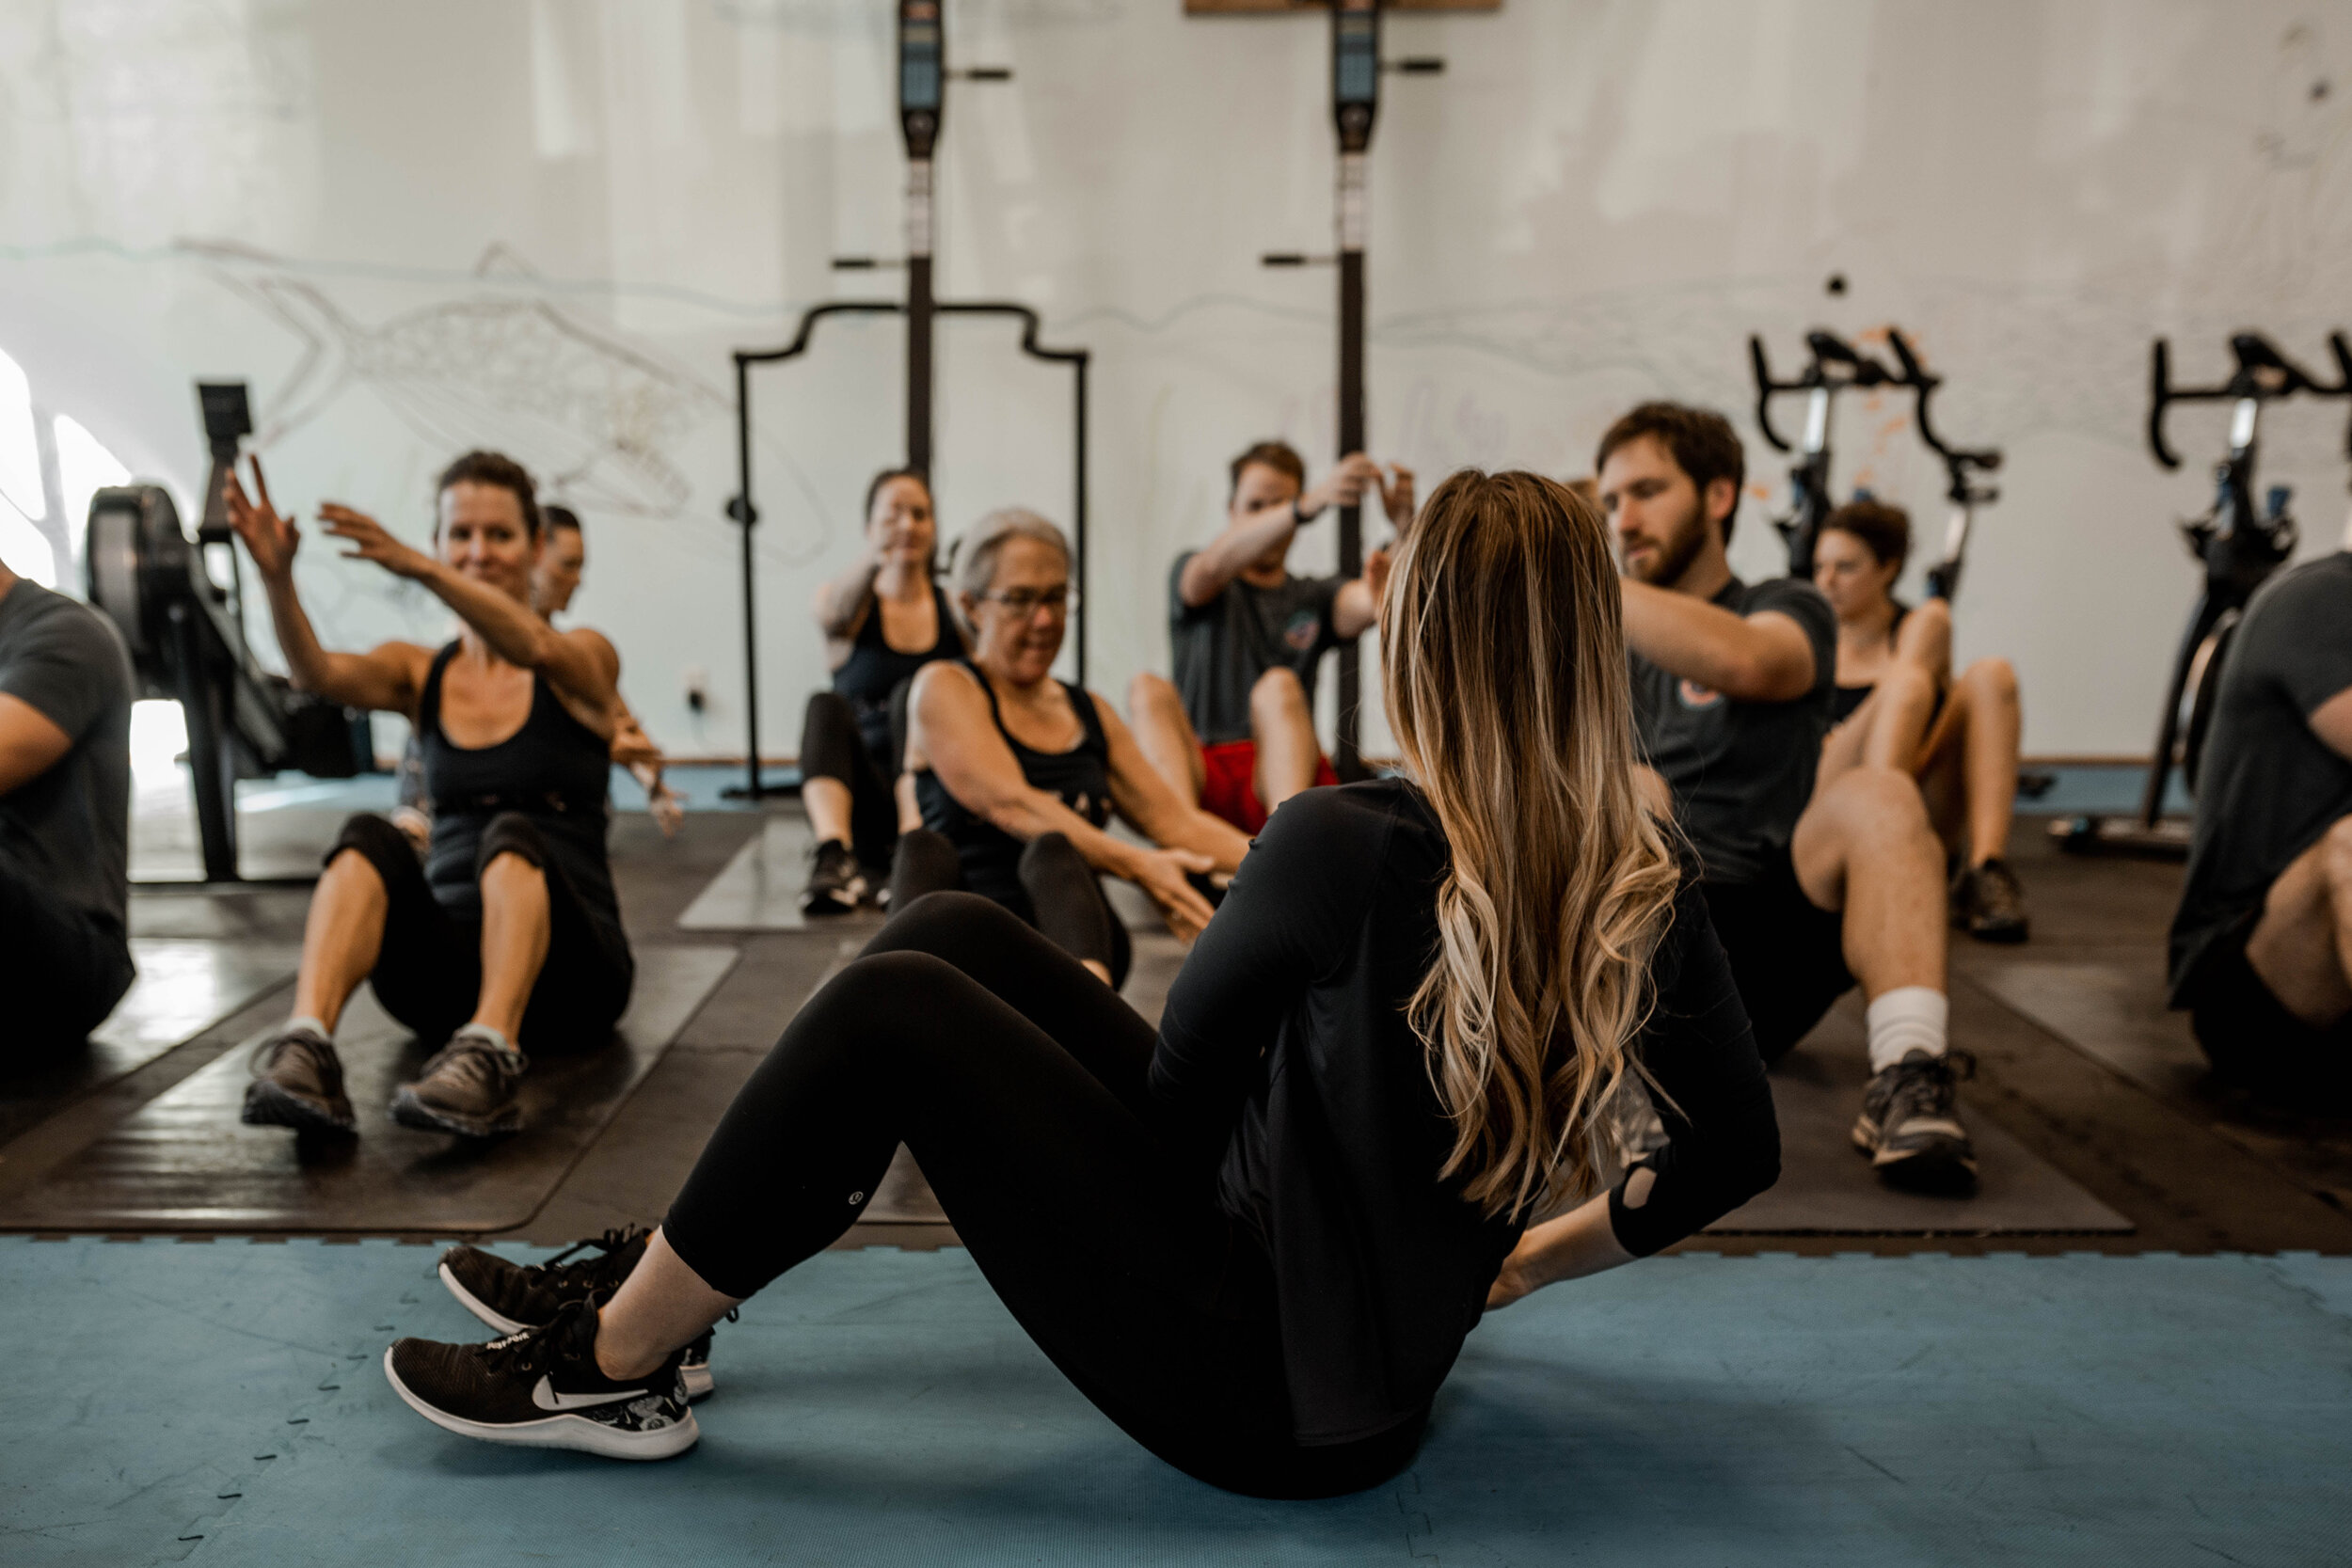 Find Your Tribe. - Join a fitness community that is passionate, determined, and supportive. Whether you want to train in a group or get one-on-one specialization, we have you covered. Plus, every month, a portion of our proceeds go to a family in the community in need..Learn more ➝